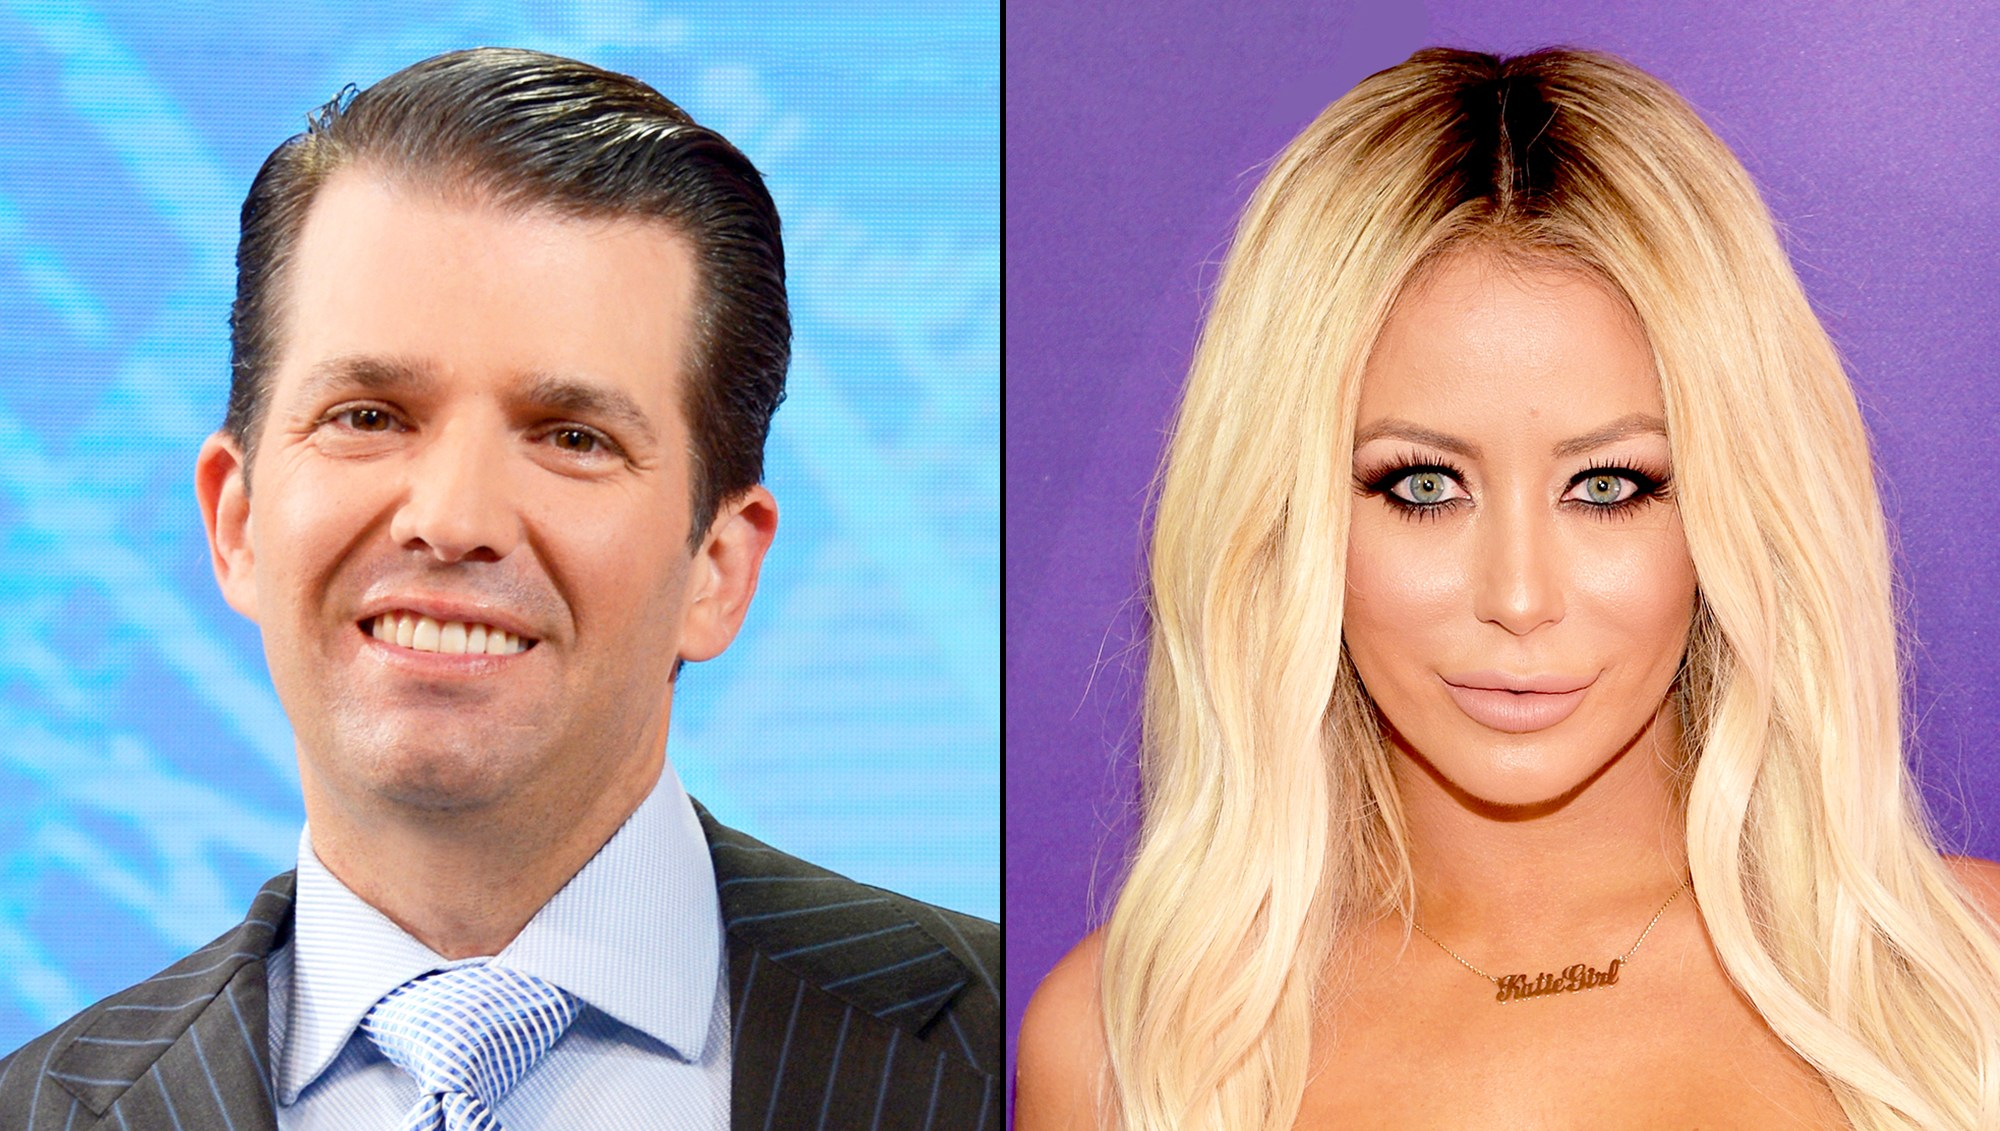 Donald Trump Jr. and Aubrey O'Day